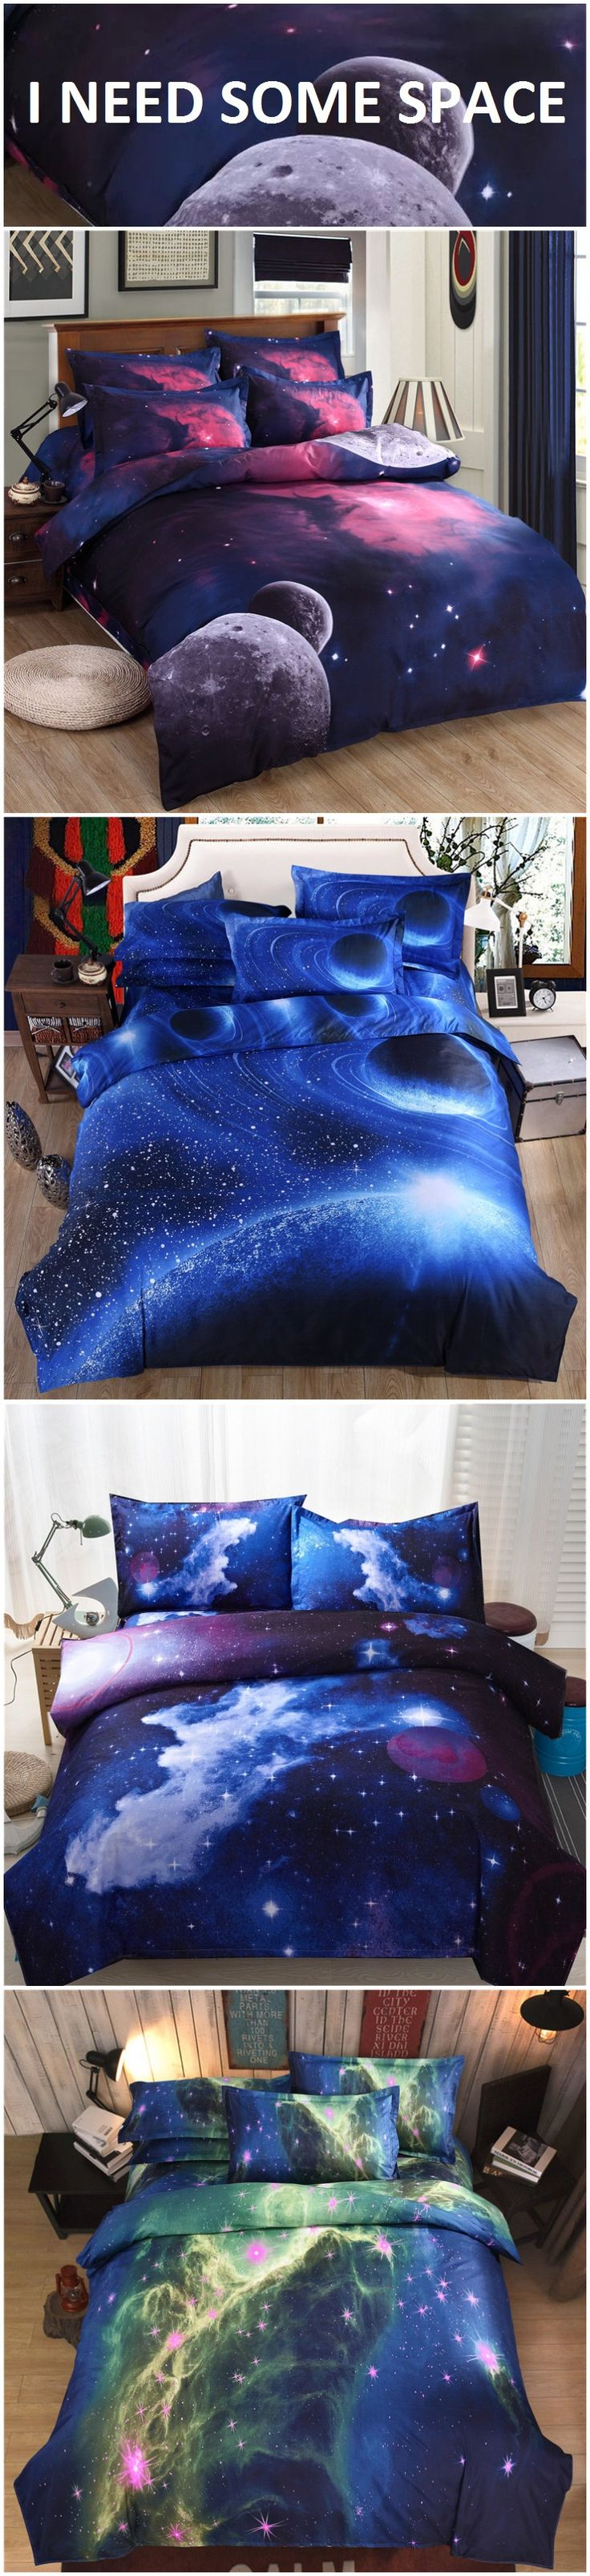 Pcs peter pan bedding set duvet cover fitted sheet pillow case worl - 3d Galaxy Pattern Bedding Sets Universe Outer Space Duvet Cover Fitted Bed Sheet Pillowcase